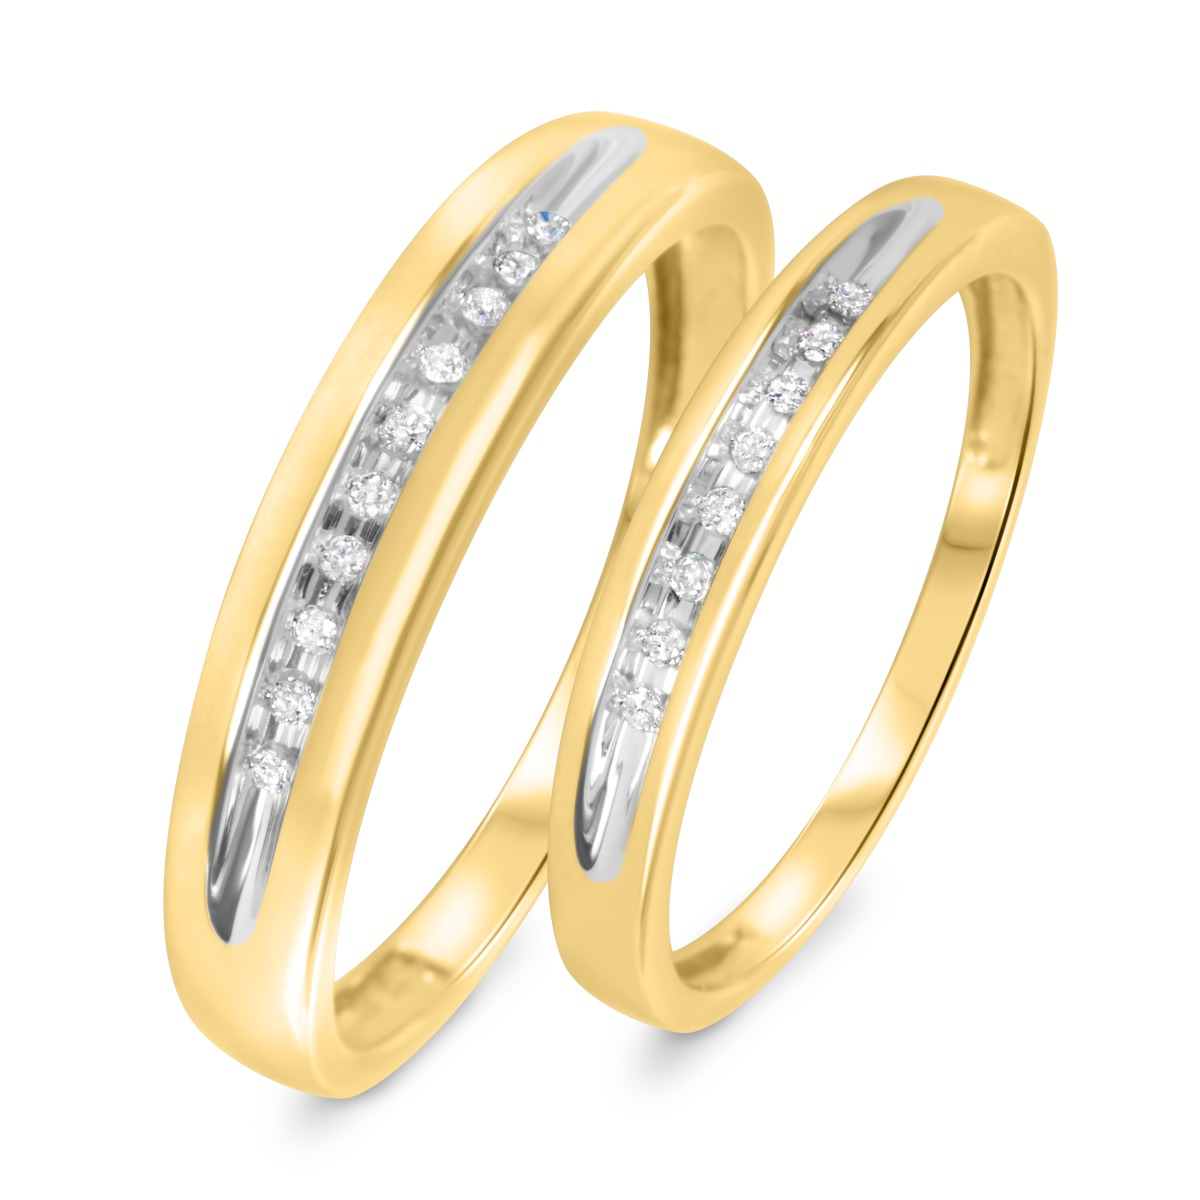 1/10 Carat T.W. Diamond His And Hers Wedding Rings 10K Yellow Gold